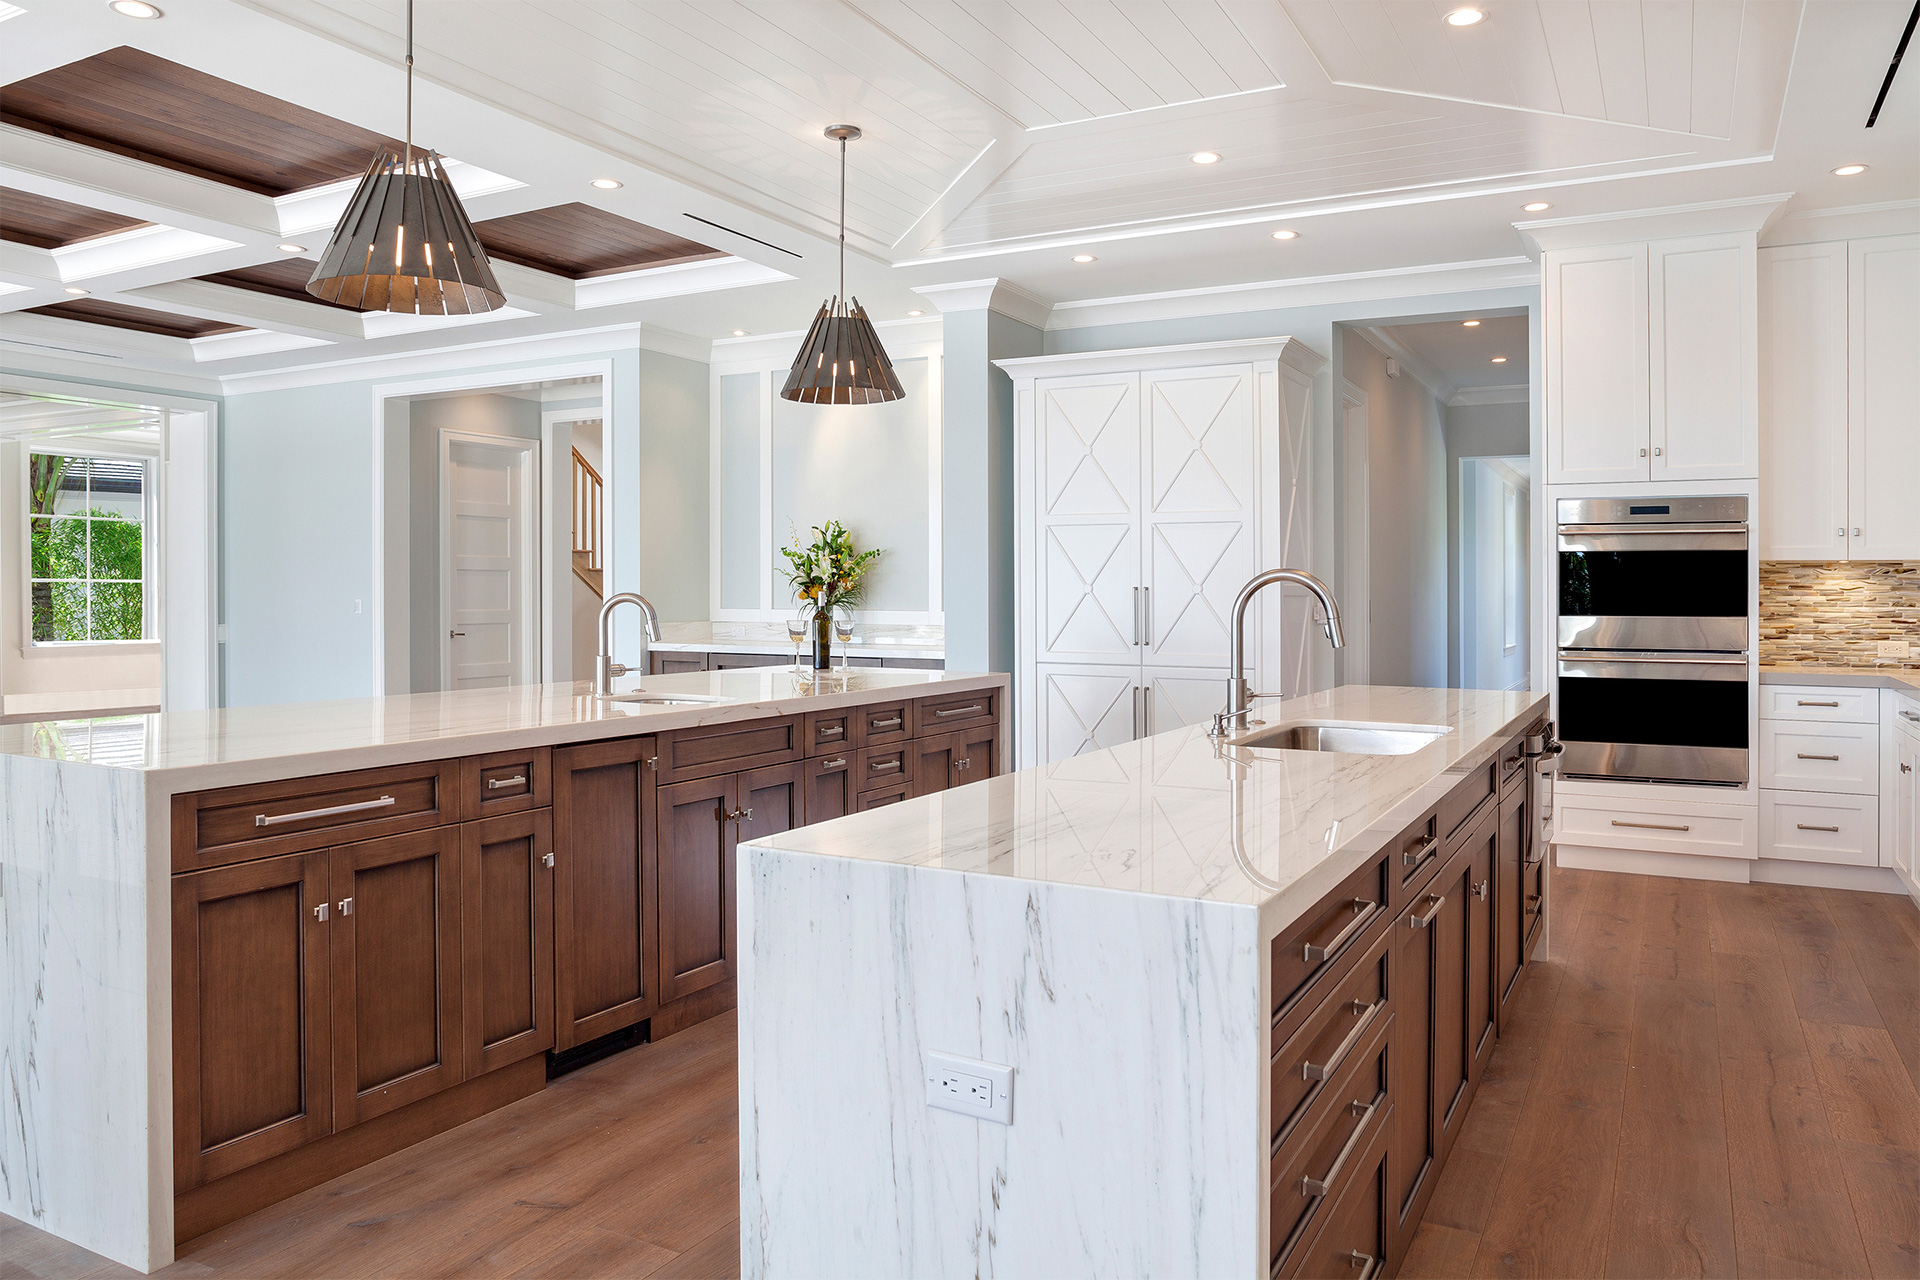 Riverside Drive | Tequesta - The Place For Kitchens and Baths